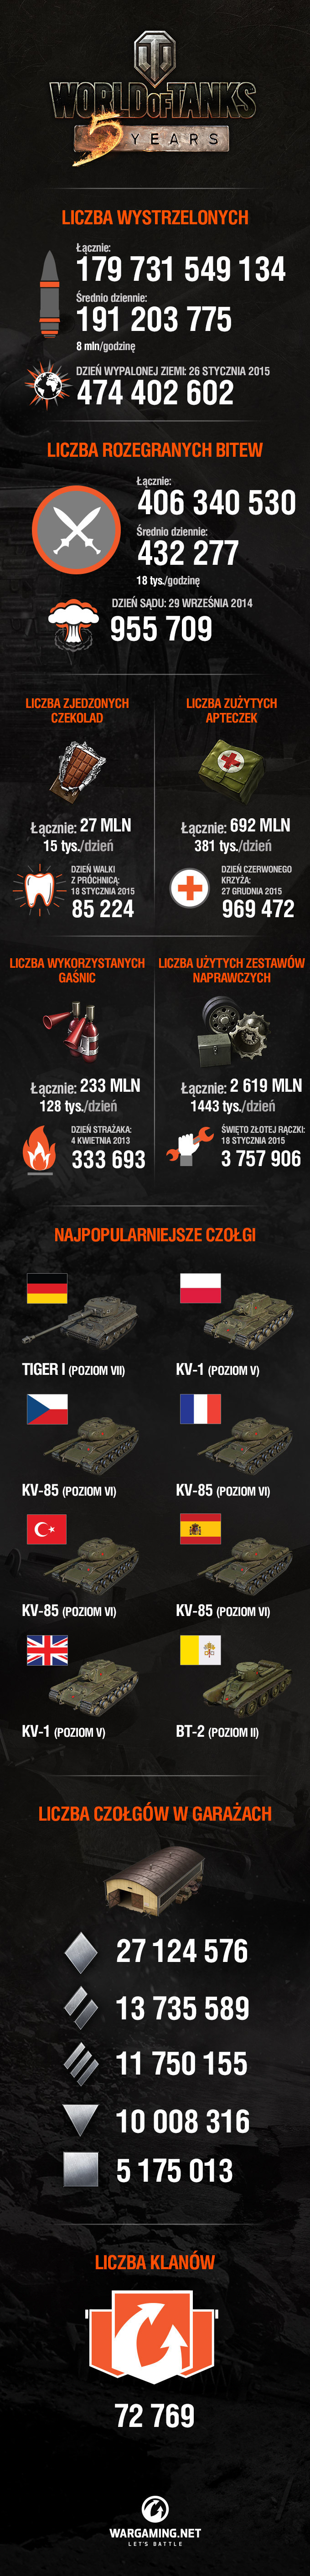 wot_infographic_5thanniversary_phil_pl_v2